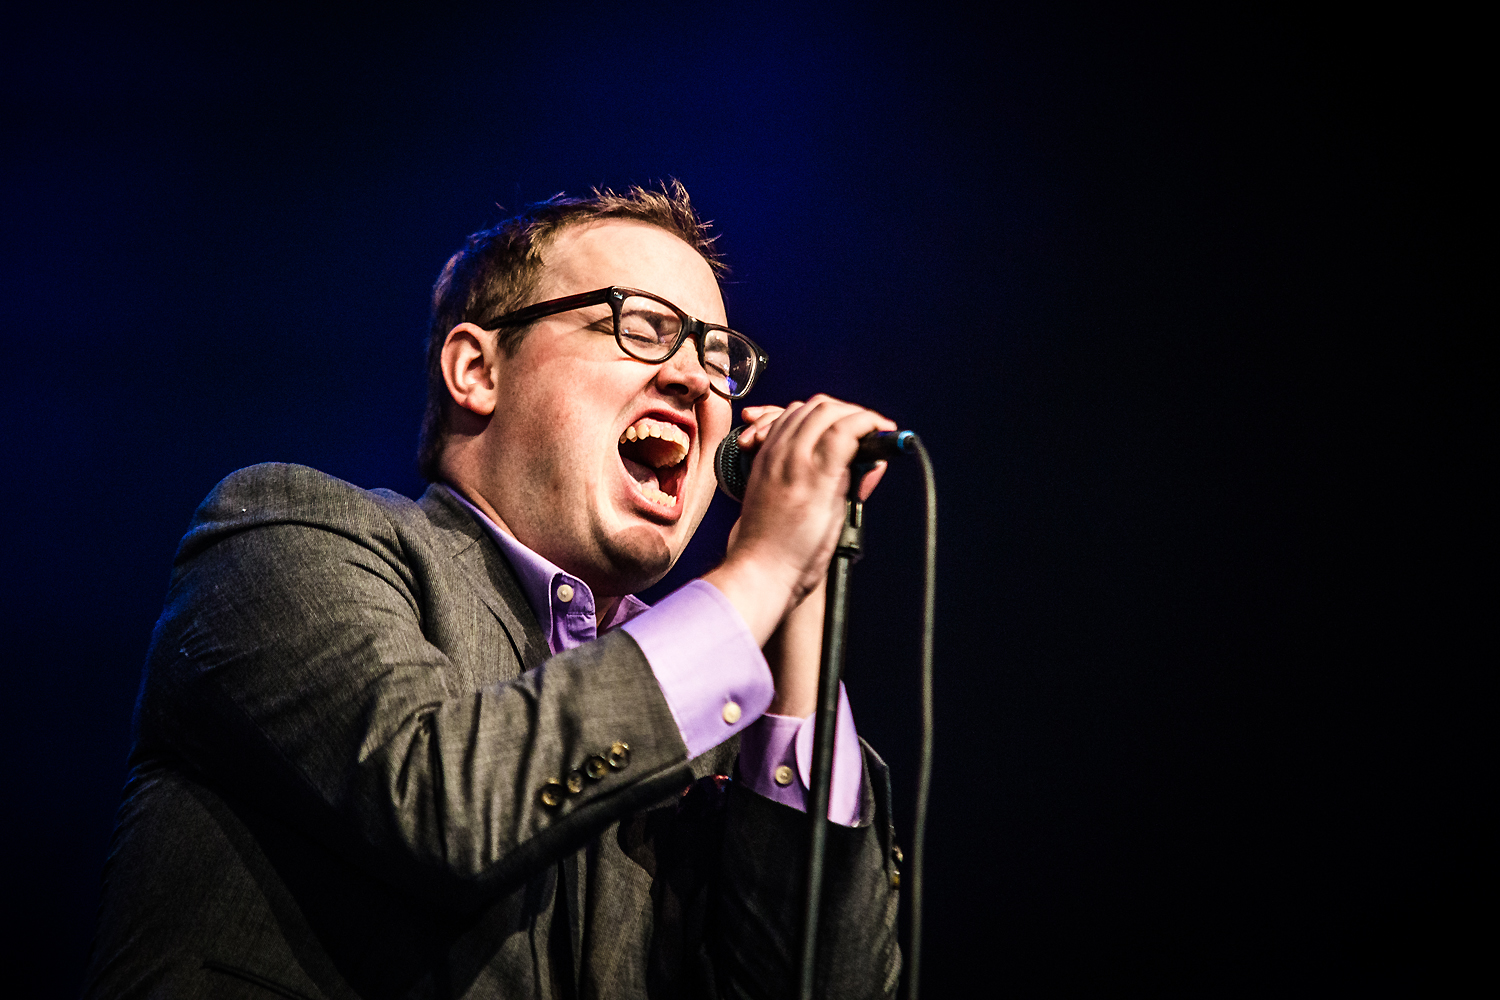 BKS 403 - St Paul & The Broken Bones